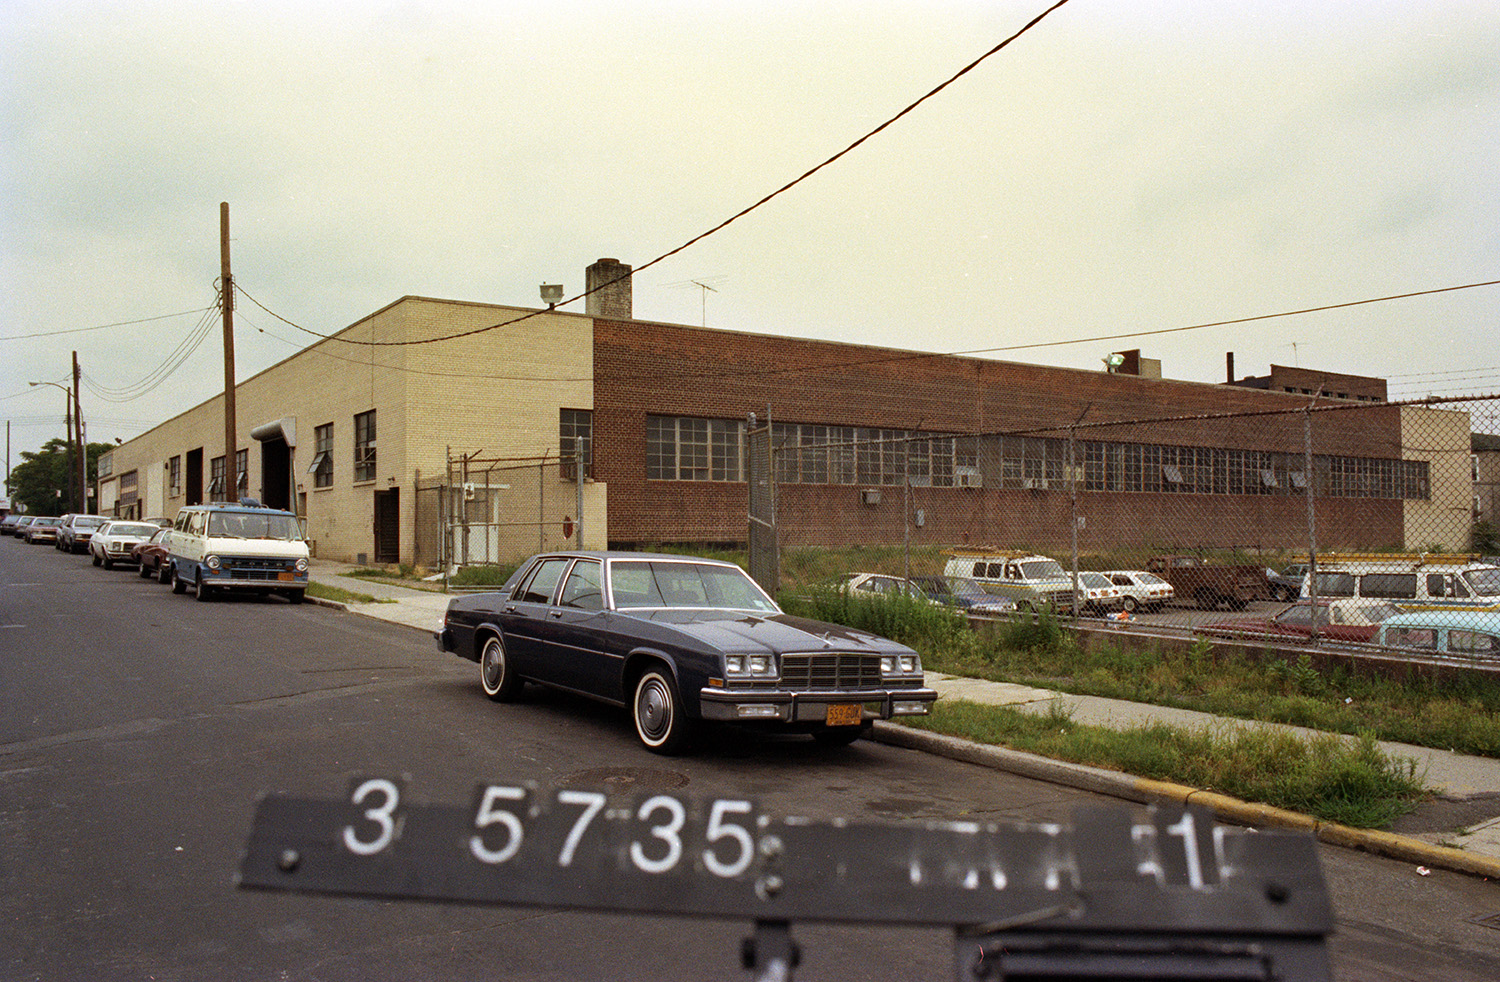 6301 8th Ave. (at 63rd St.), Brooklyn, 1983-1988. NYC Municipal Archives.